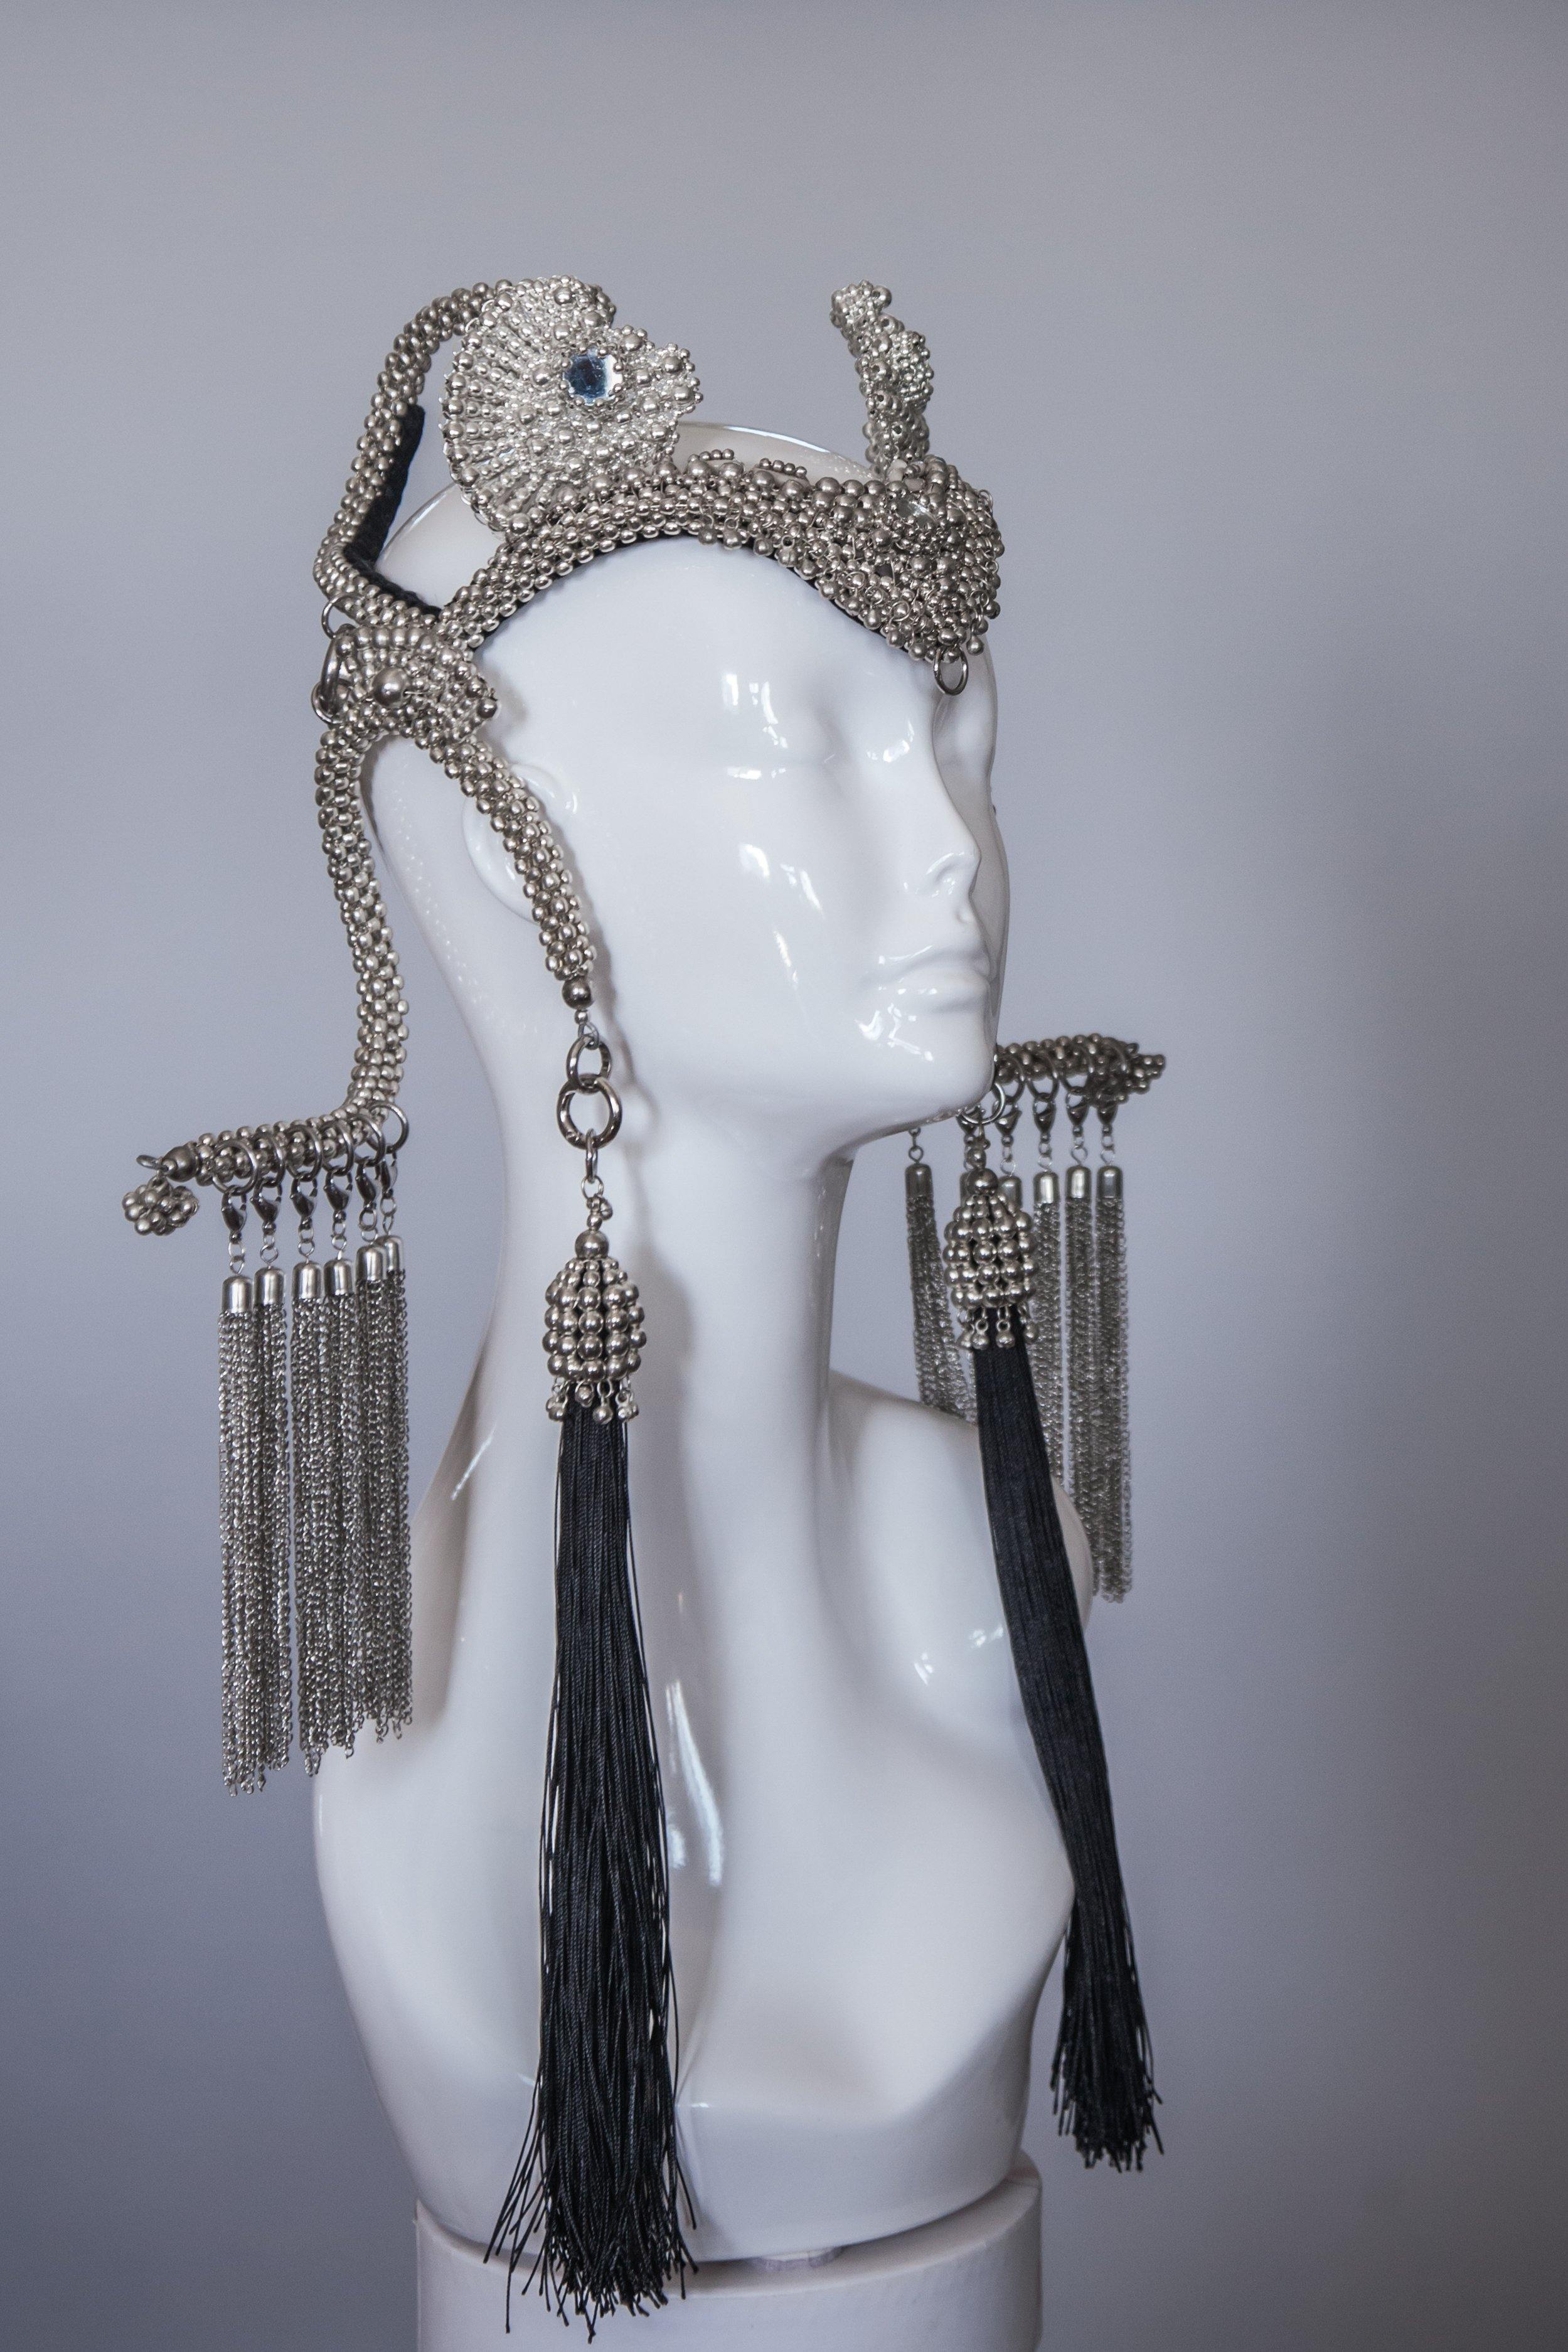 Jas Modular Headpiece System with Extra Long Tassels